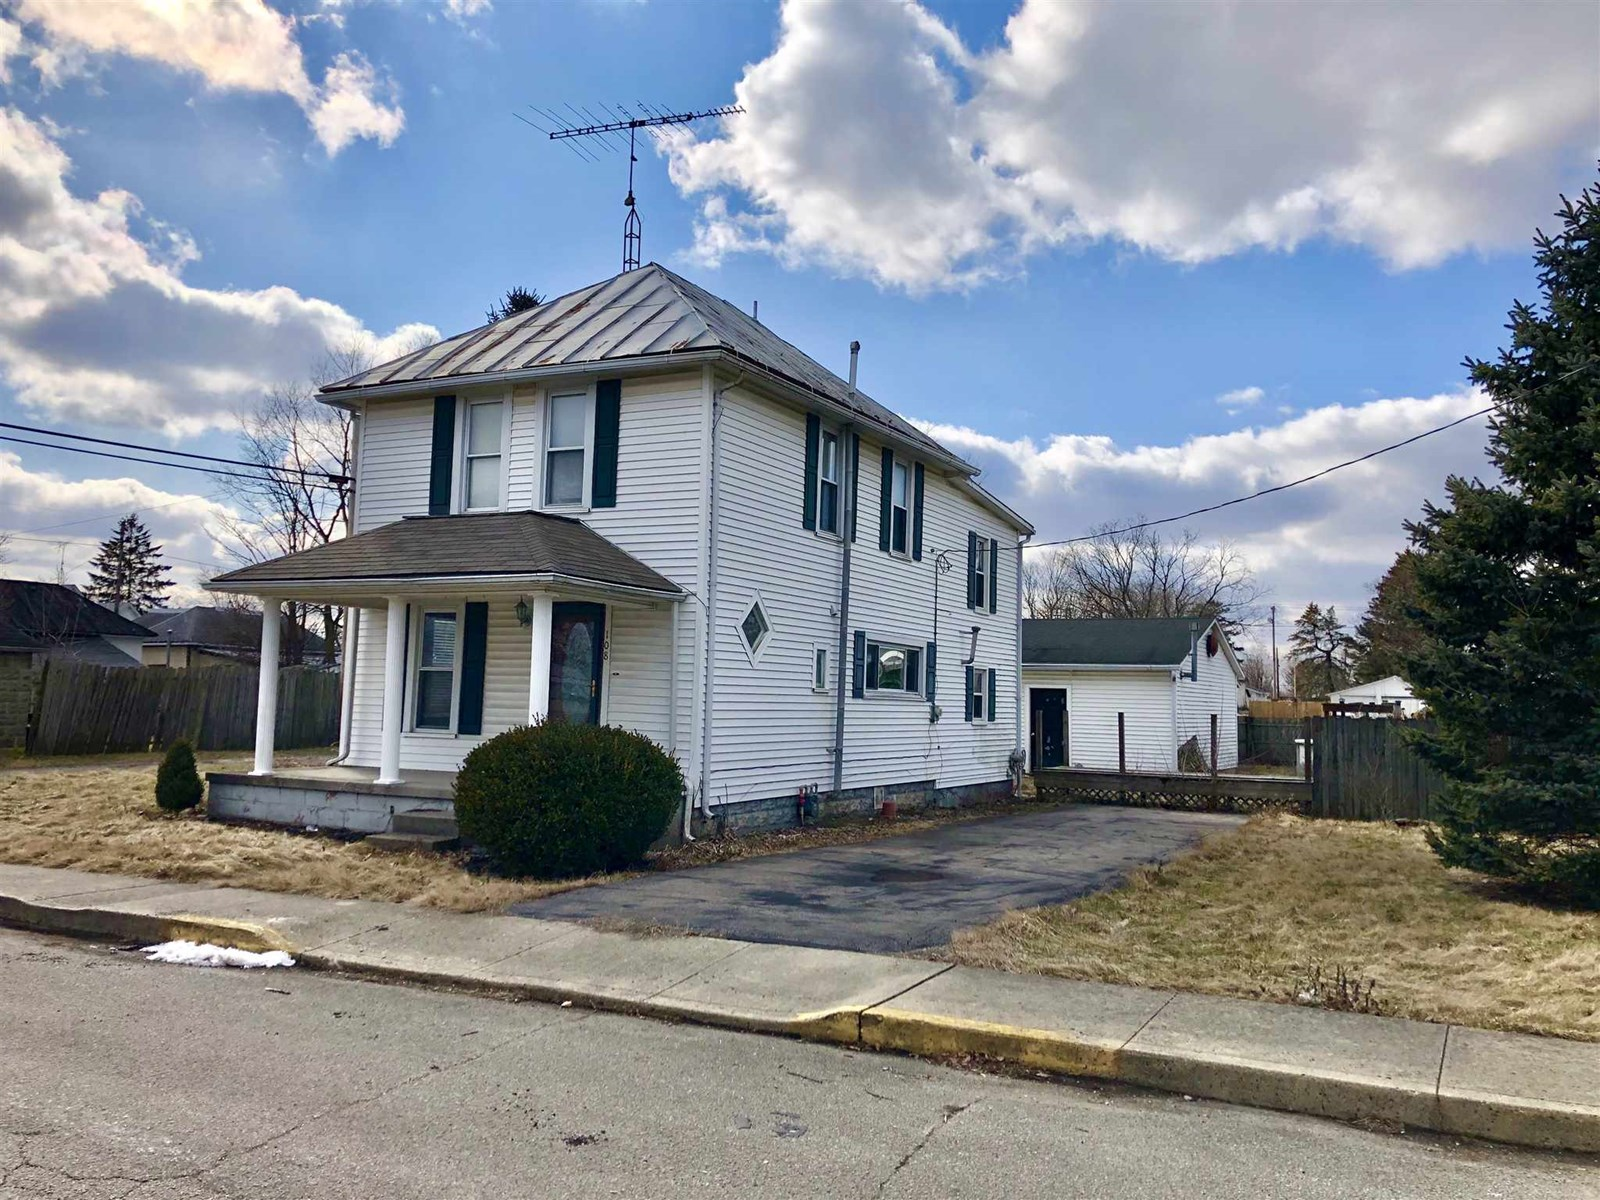 Home for Sale Lynn, Indiana